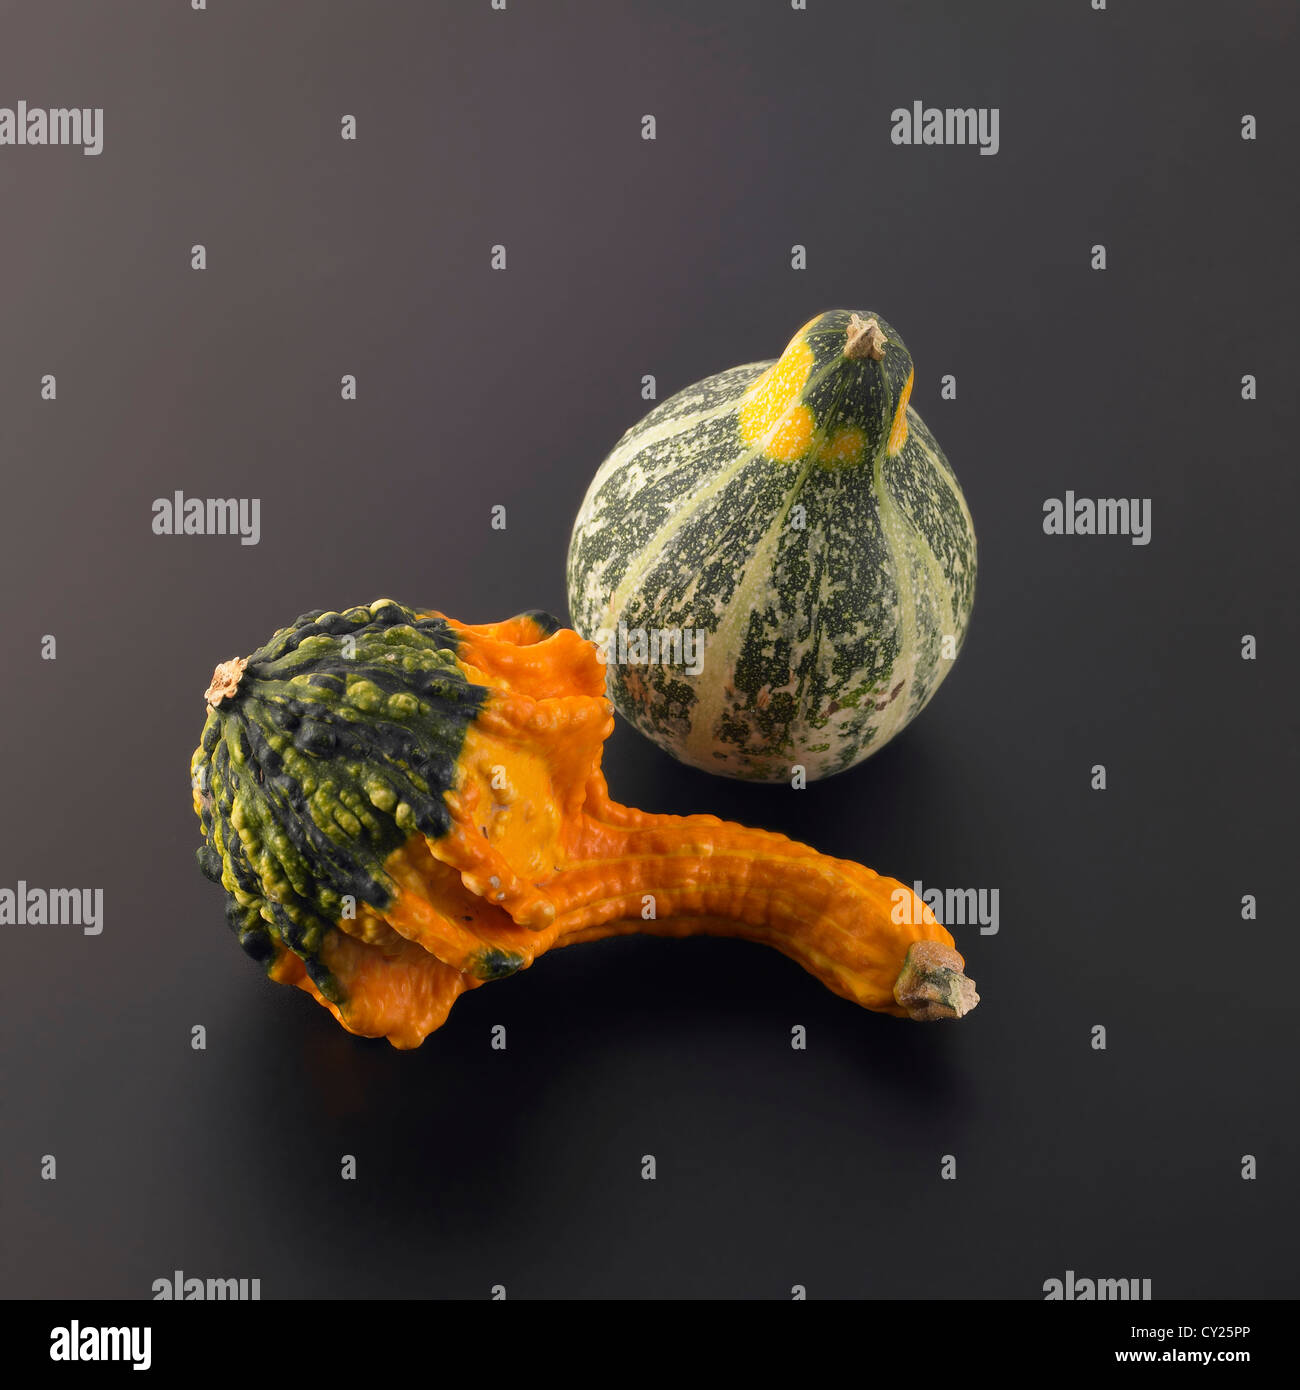 Ornamental gourds on a grey background - Stock Image